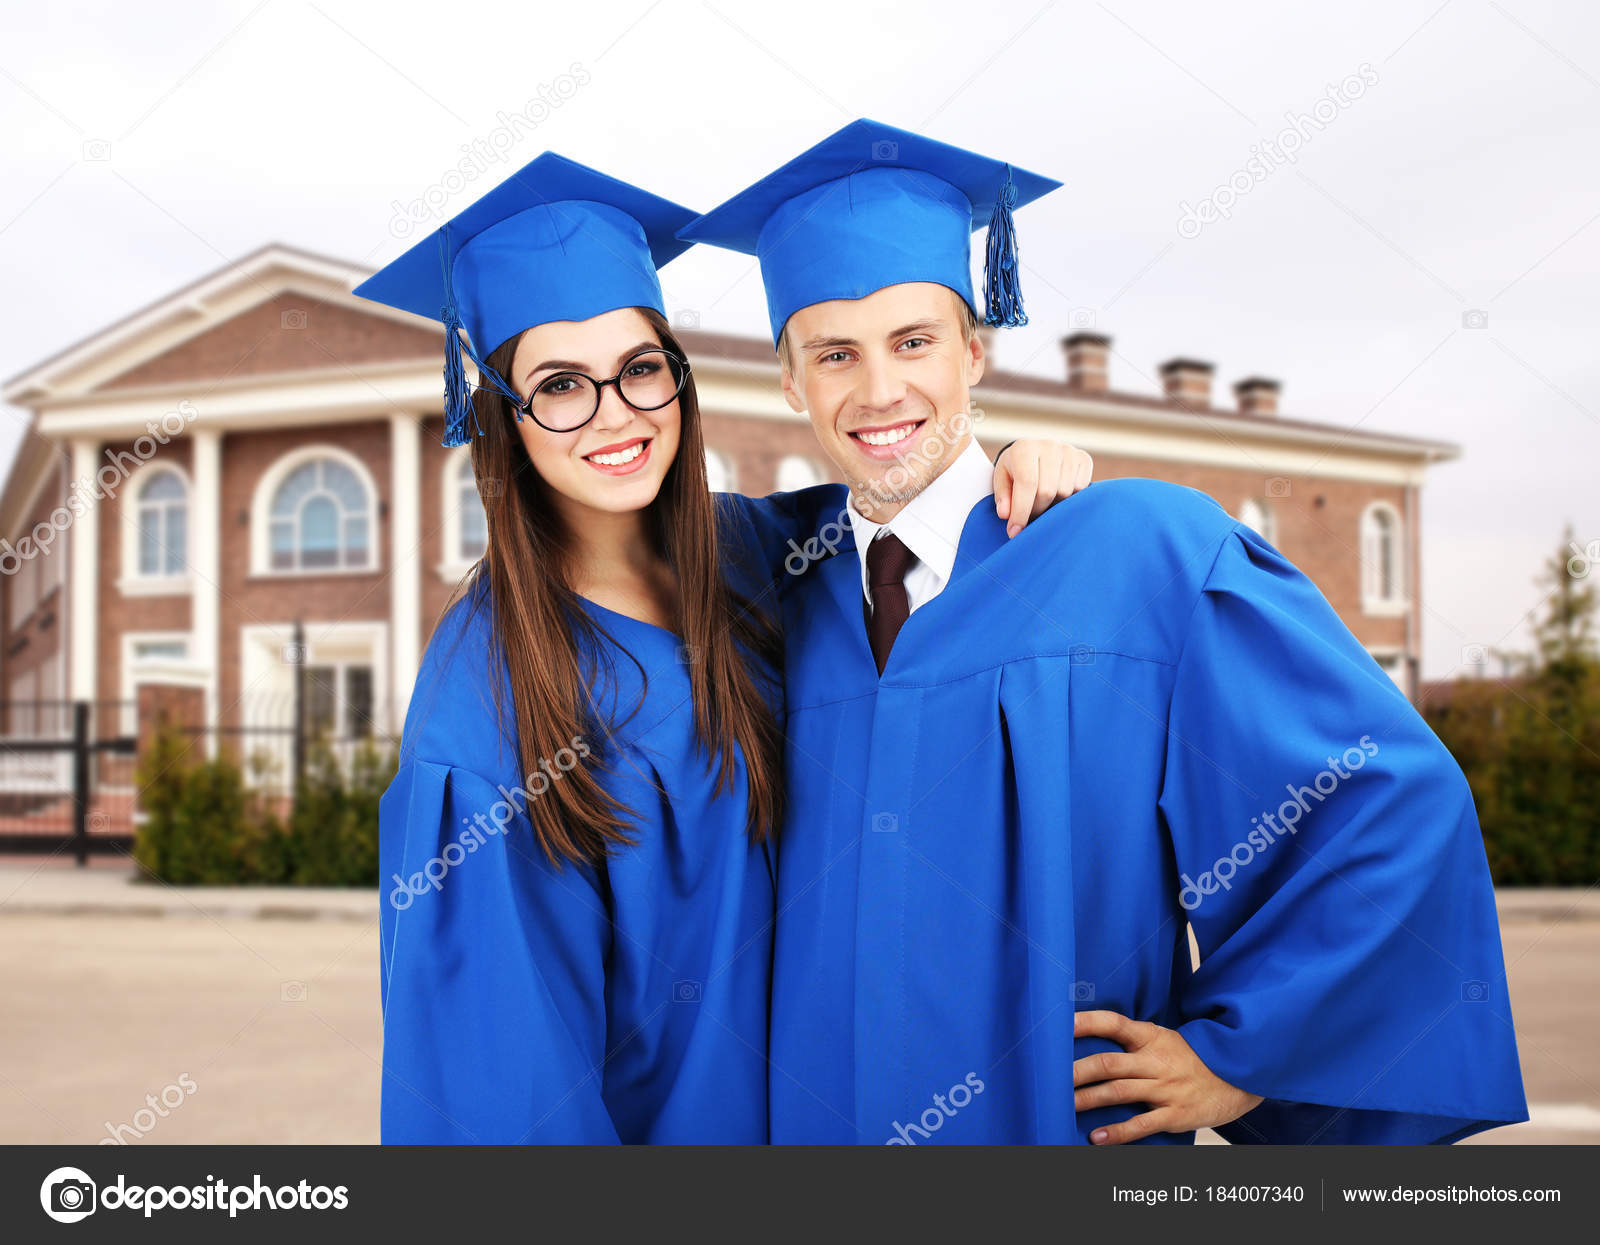 Students Graduation Gowns Caps Campus Territory — Stock Photo ...